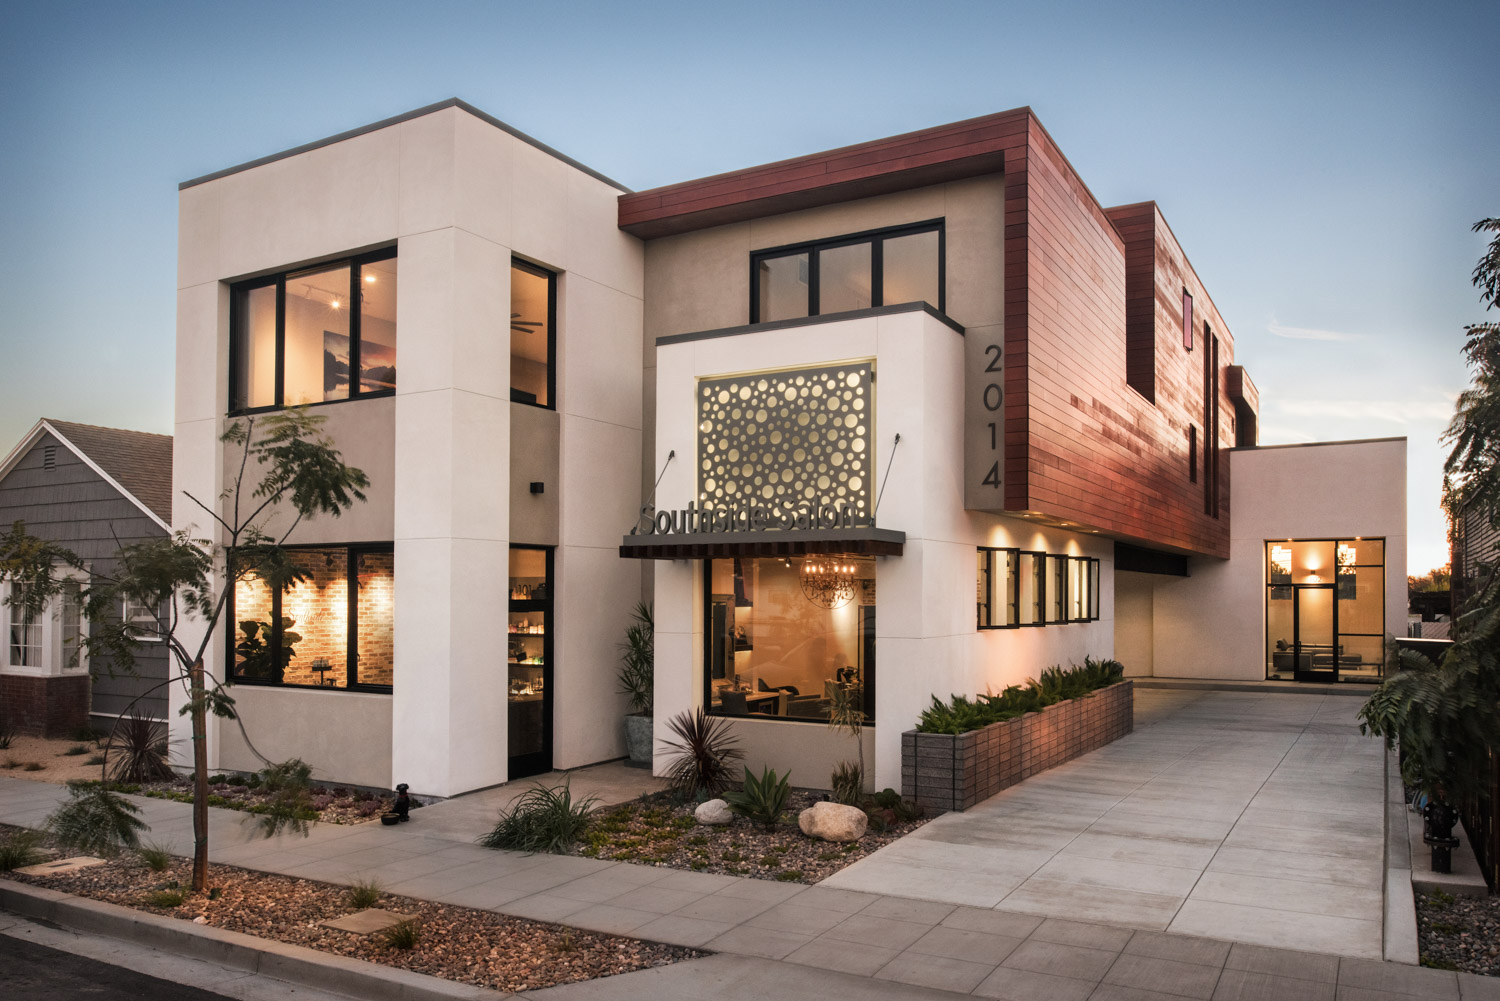 BV Architecture project Atlas Lofts in San Diego, San Diego architecture photography, mixed-use architecture, luxury apartments, modern architecture